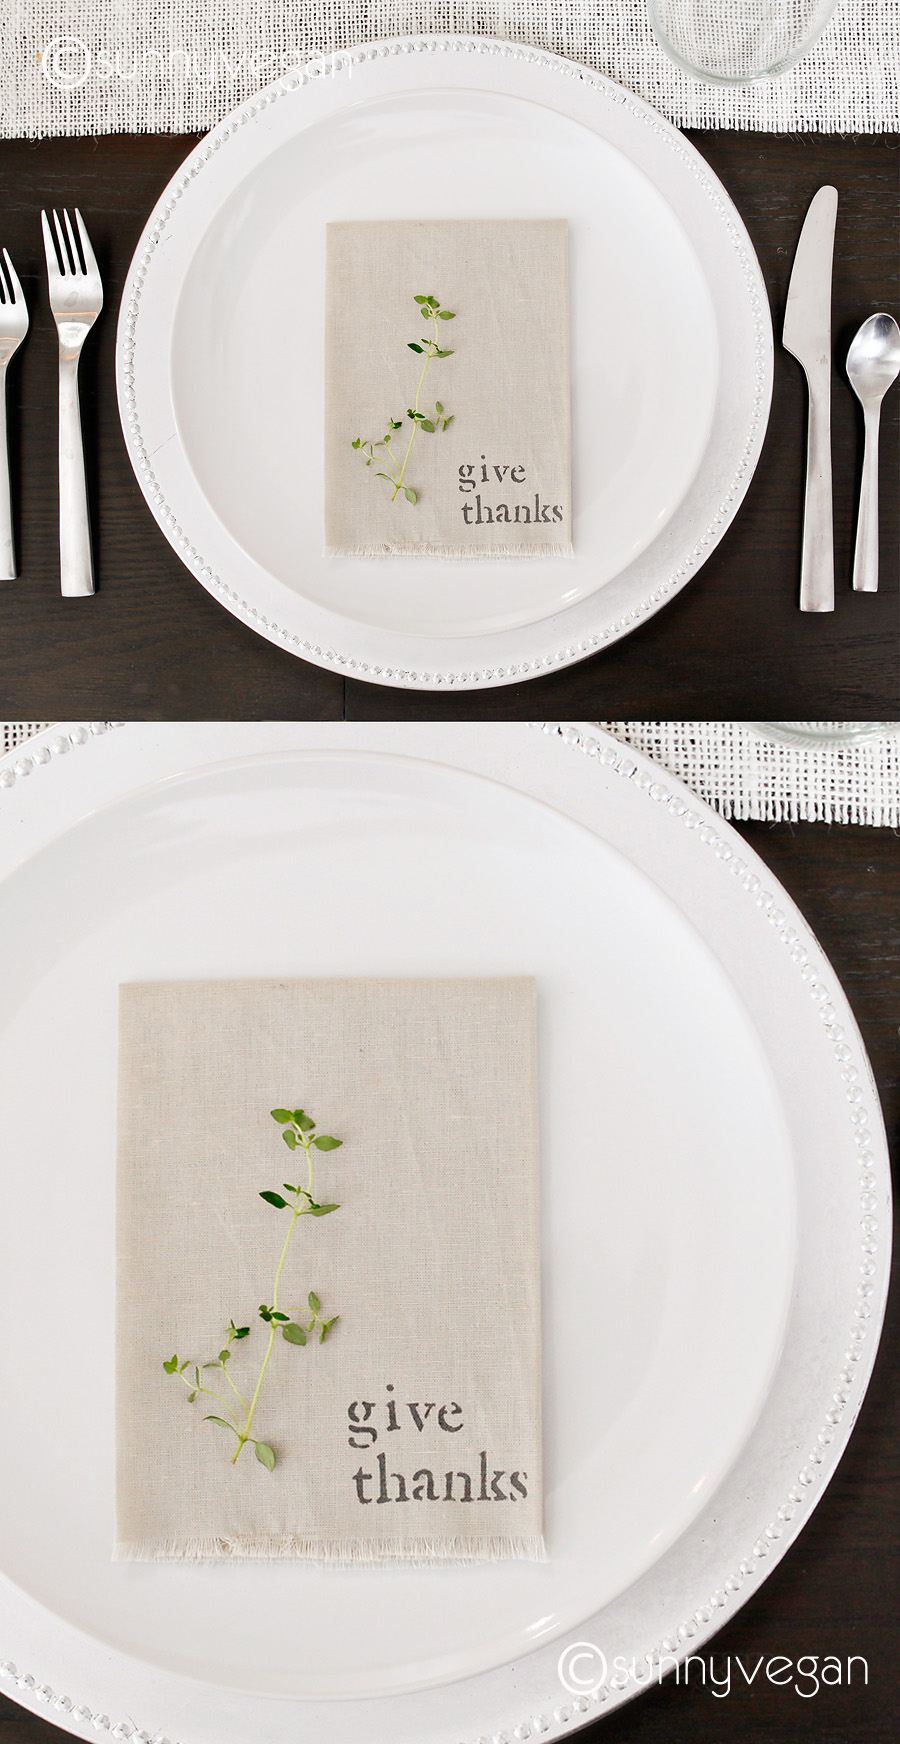 diy napkin table modern burlab runner sunny vegan